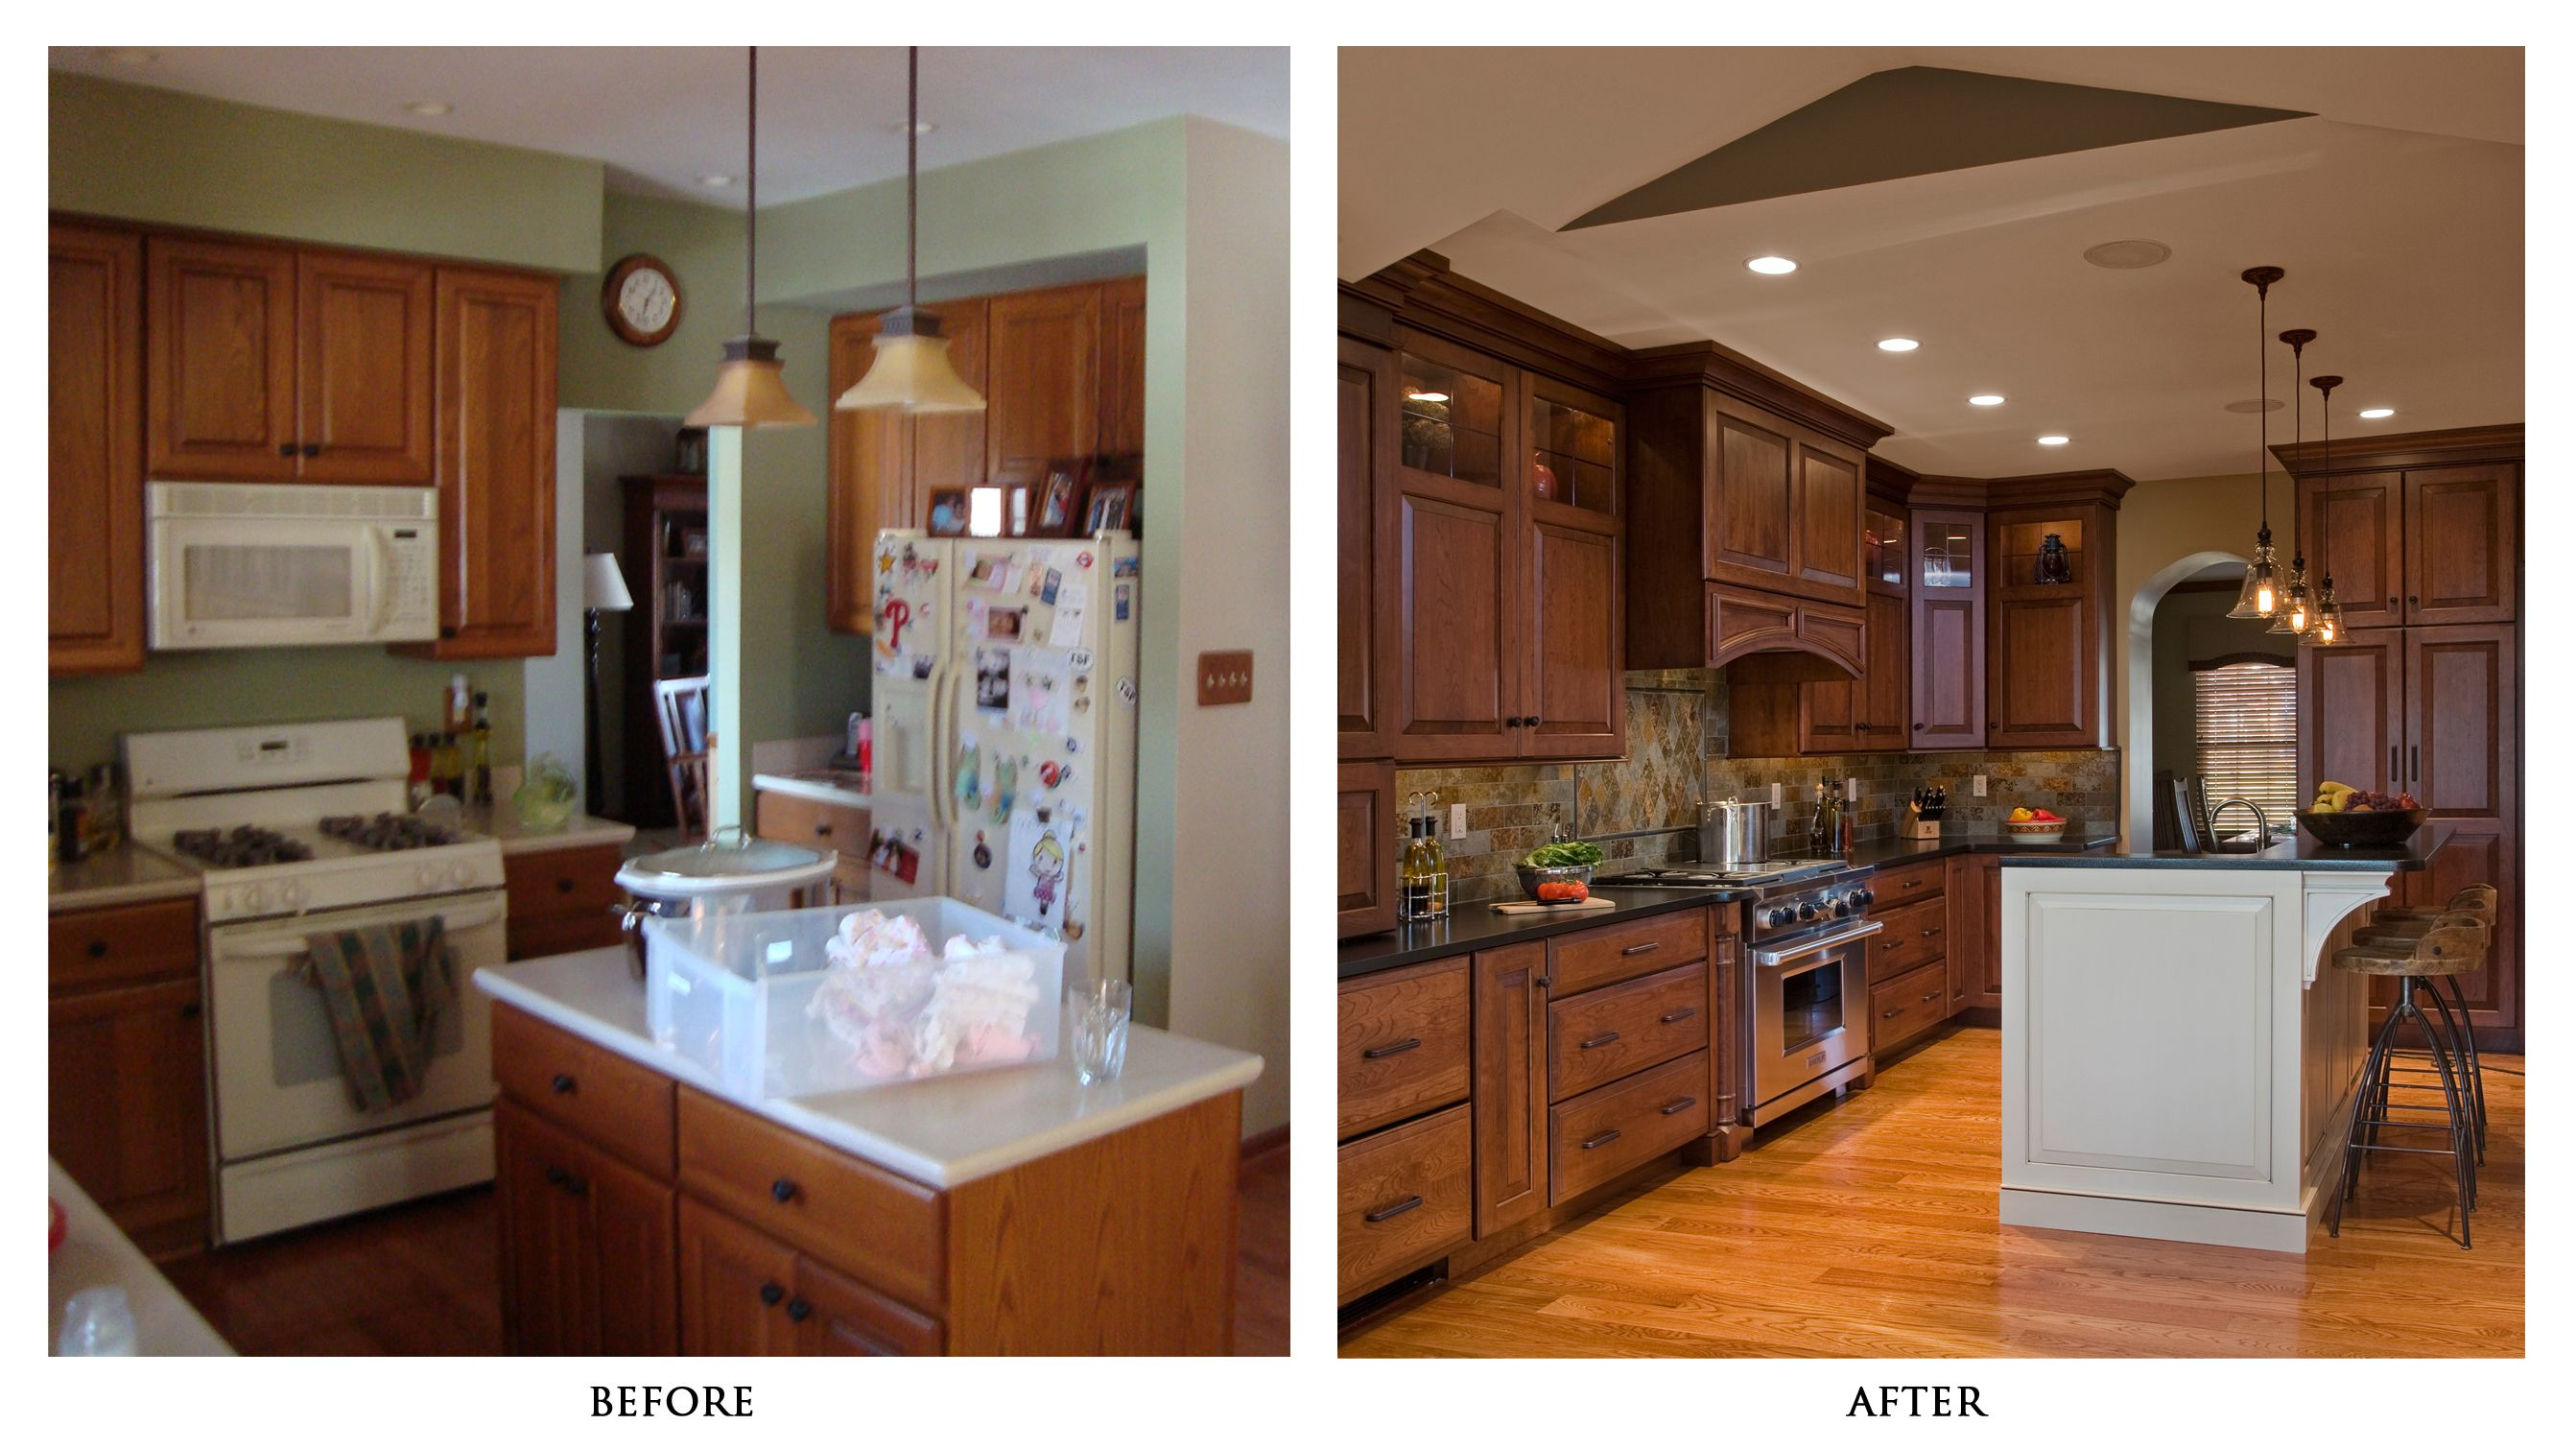 U Shaped Kitchen Remodel Ideas Before And After Kitchen Remodels Before And After Photos  Kitchen  Pinterest